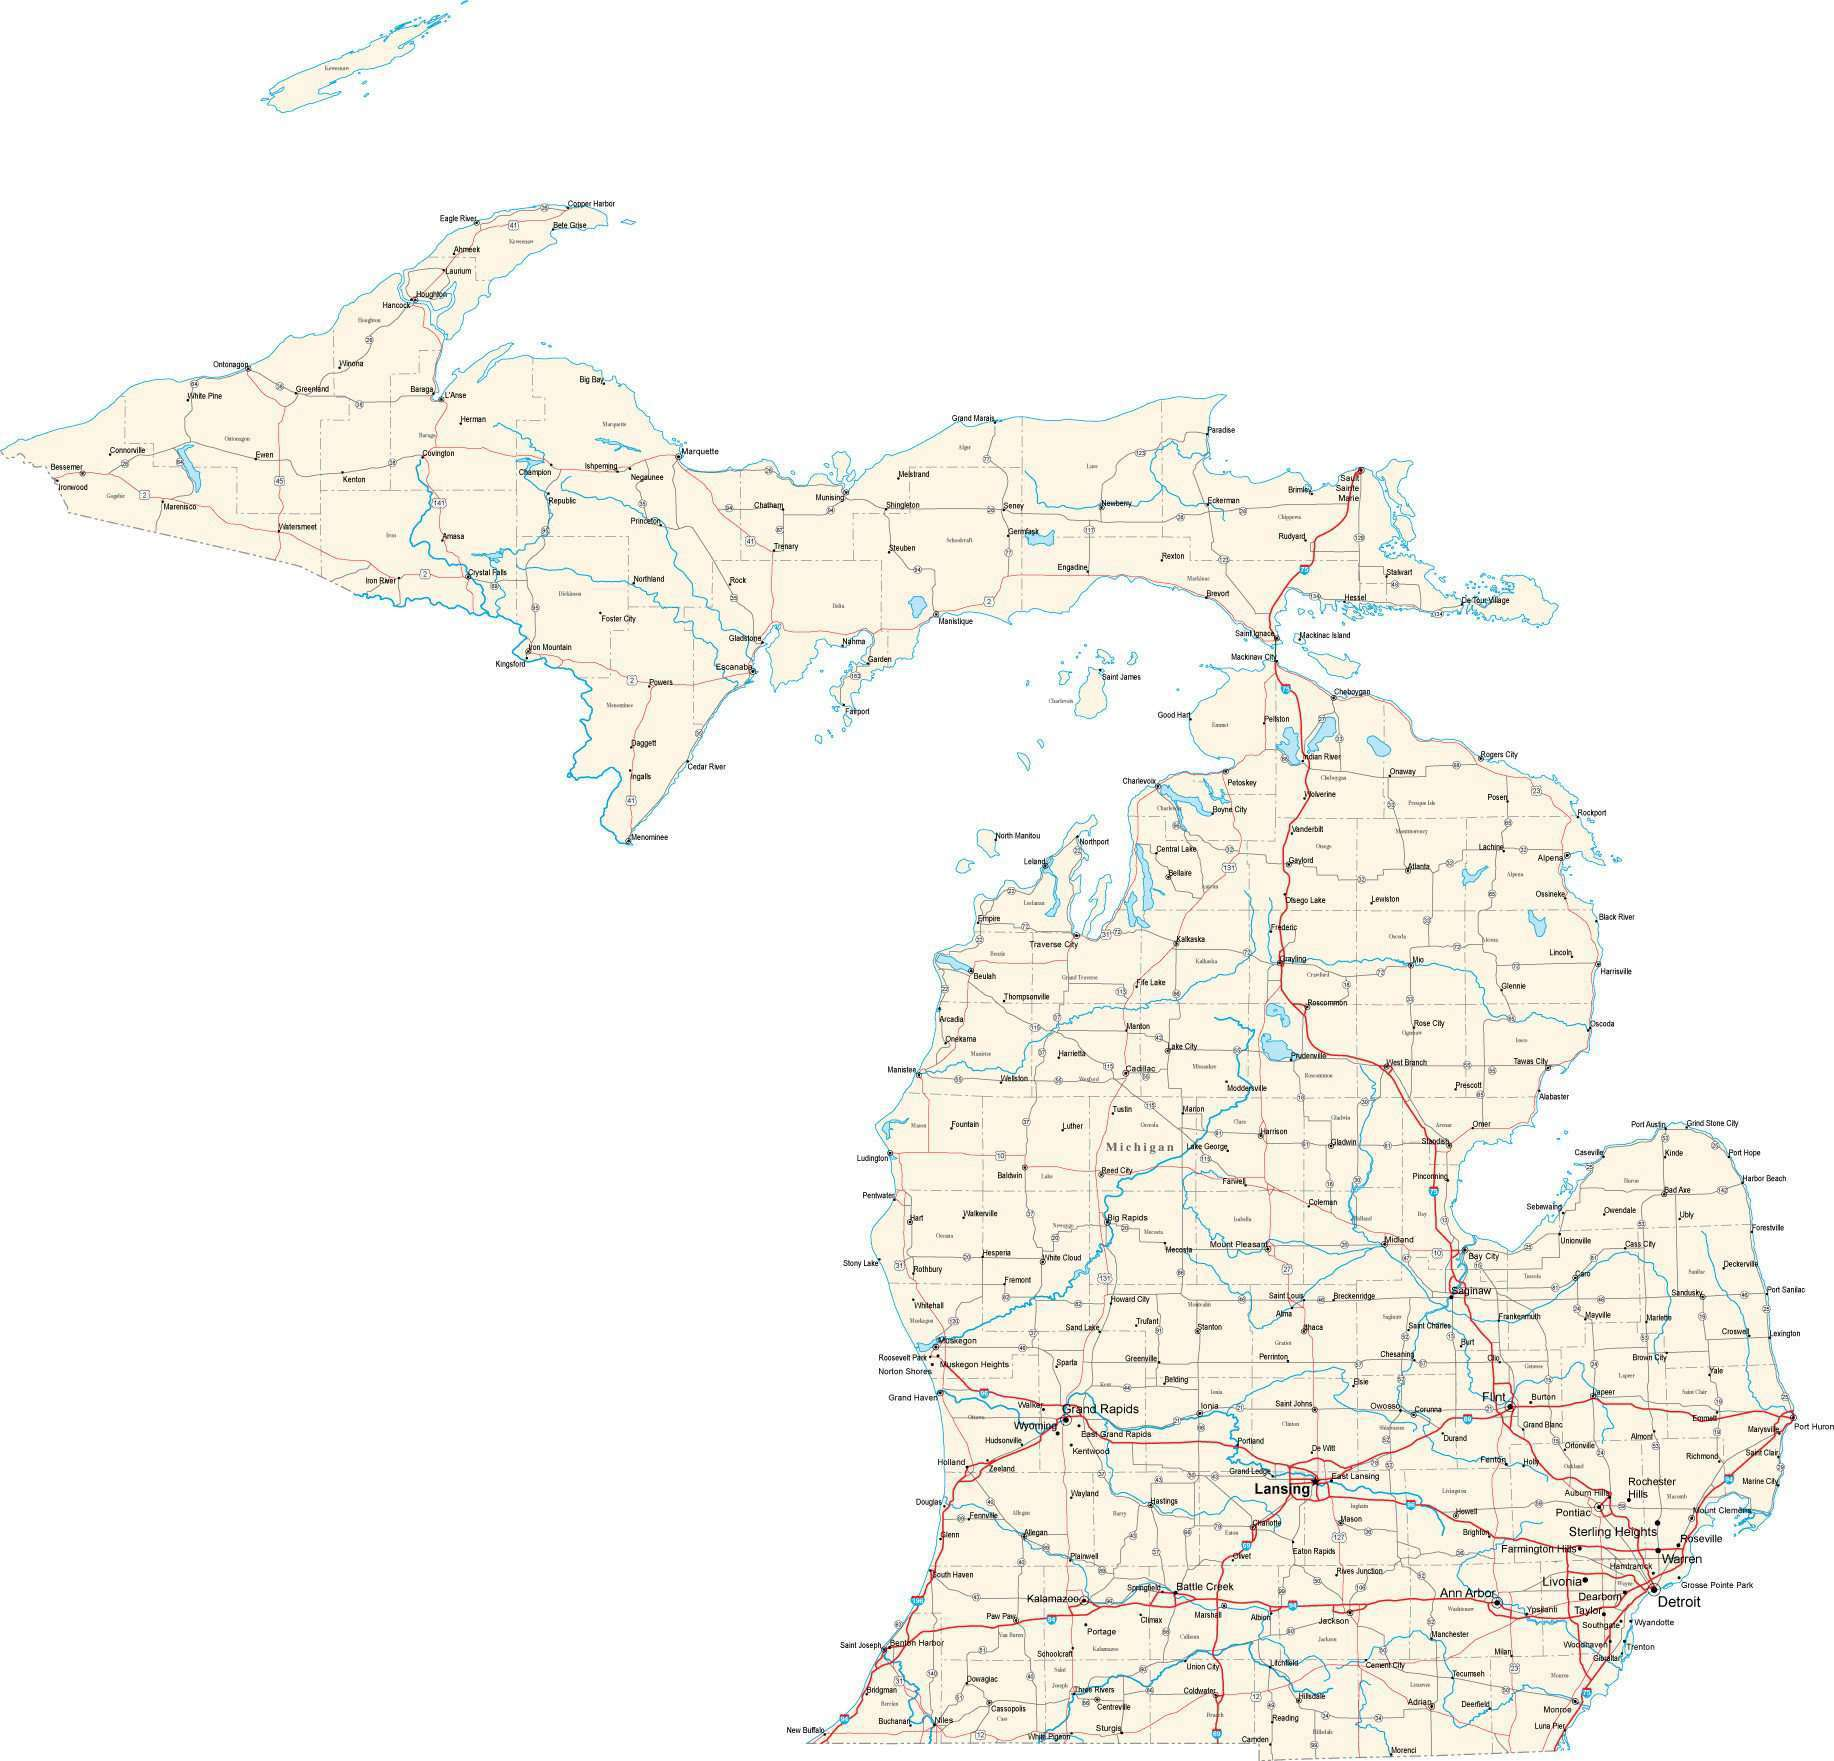 Michigan Ipl Stately Knowledge Facts About The United States - Michigan us map